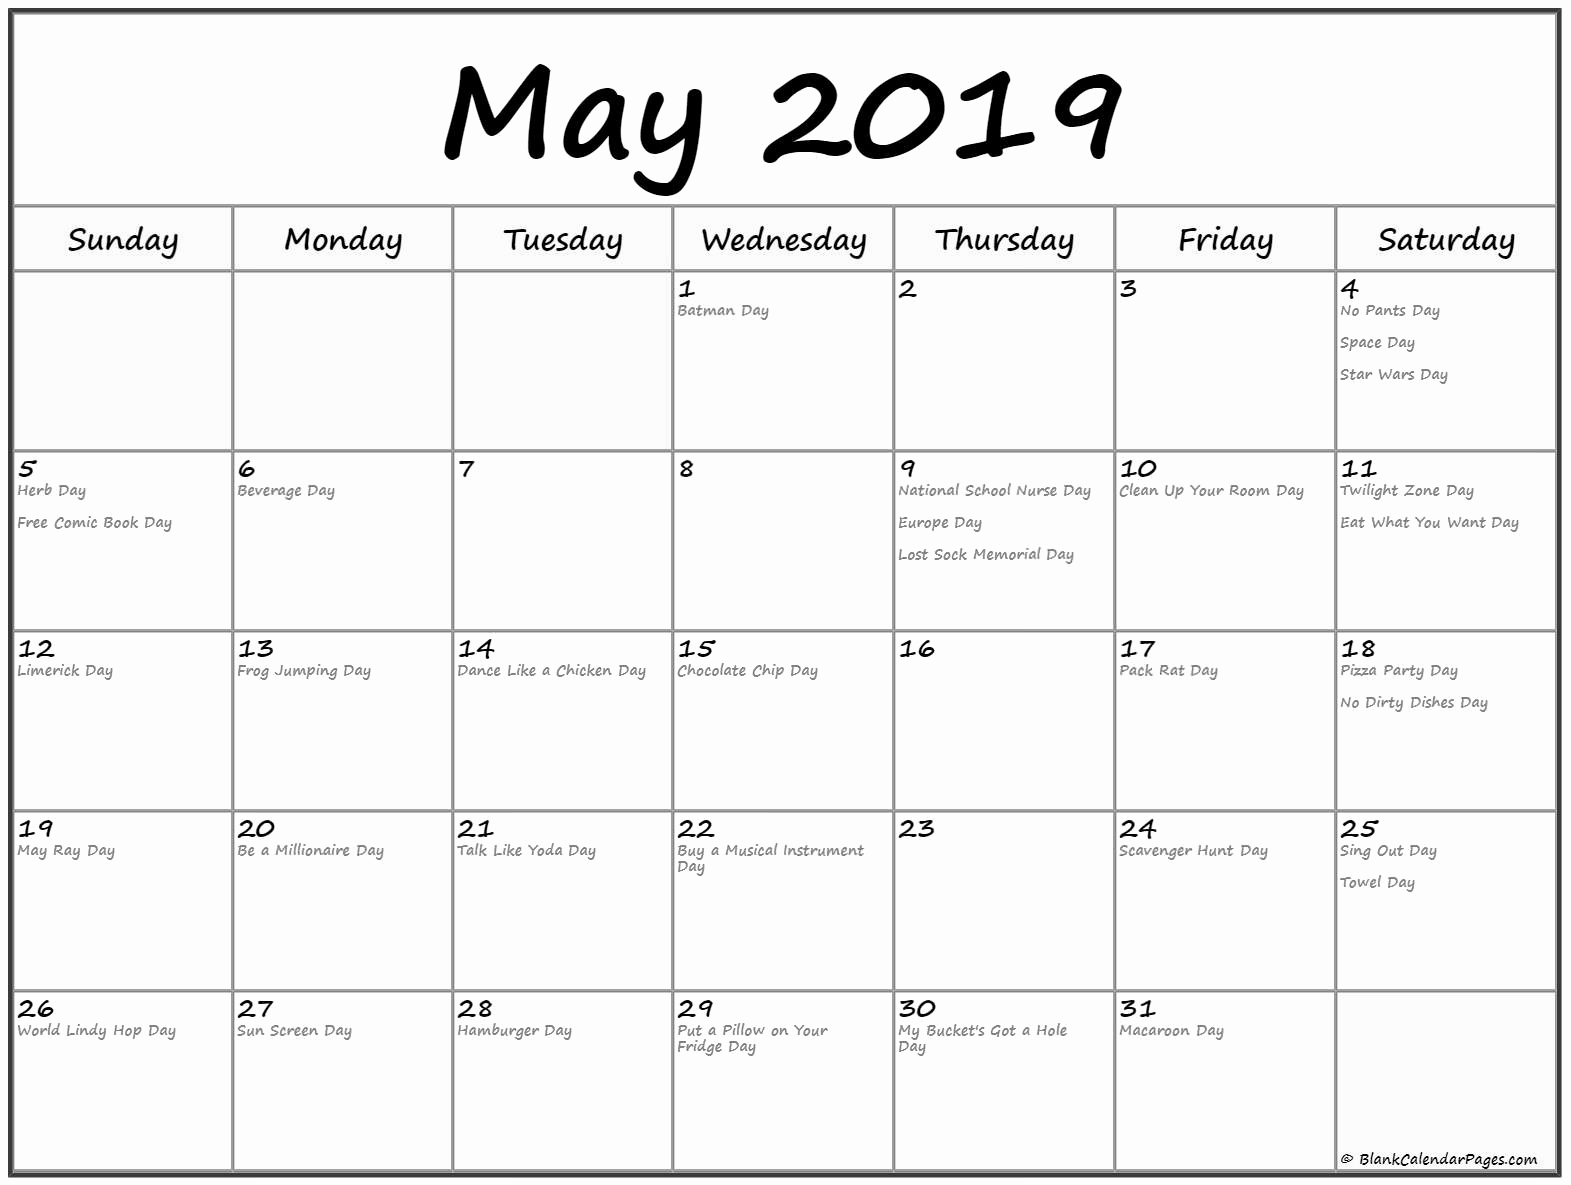 May Printable Calendar.Printable Calendar May 2019 With Holidays Free August 2019